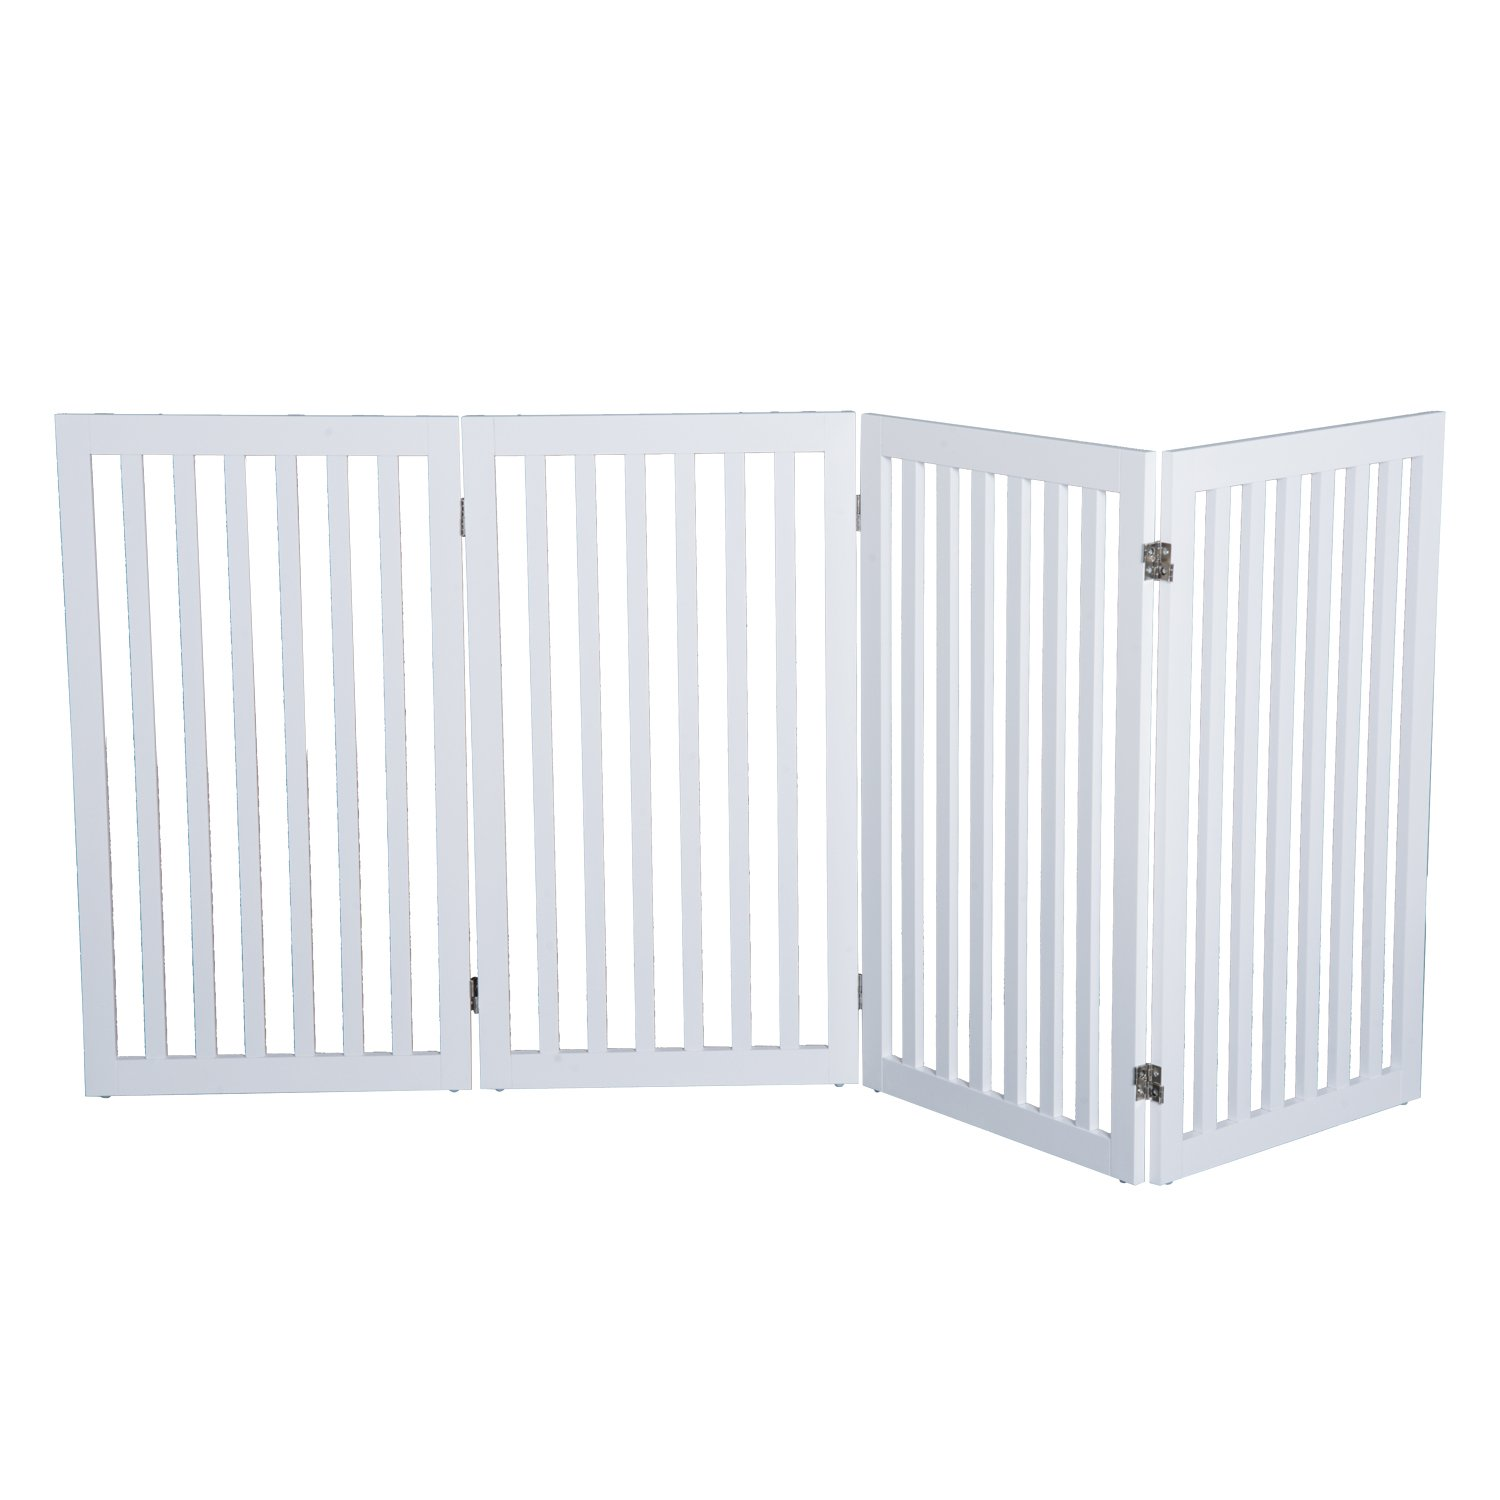 PawHut 36'' x 80'' 4 Panel Folding Wooden Indoor Freestanding Pet Safety Gate for Dogs (White)